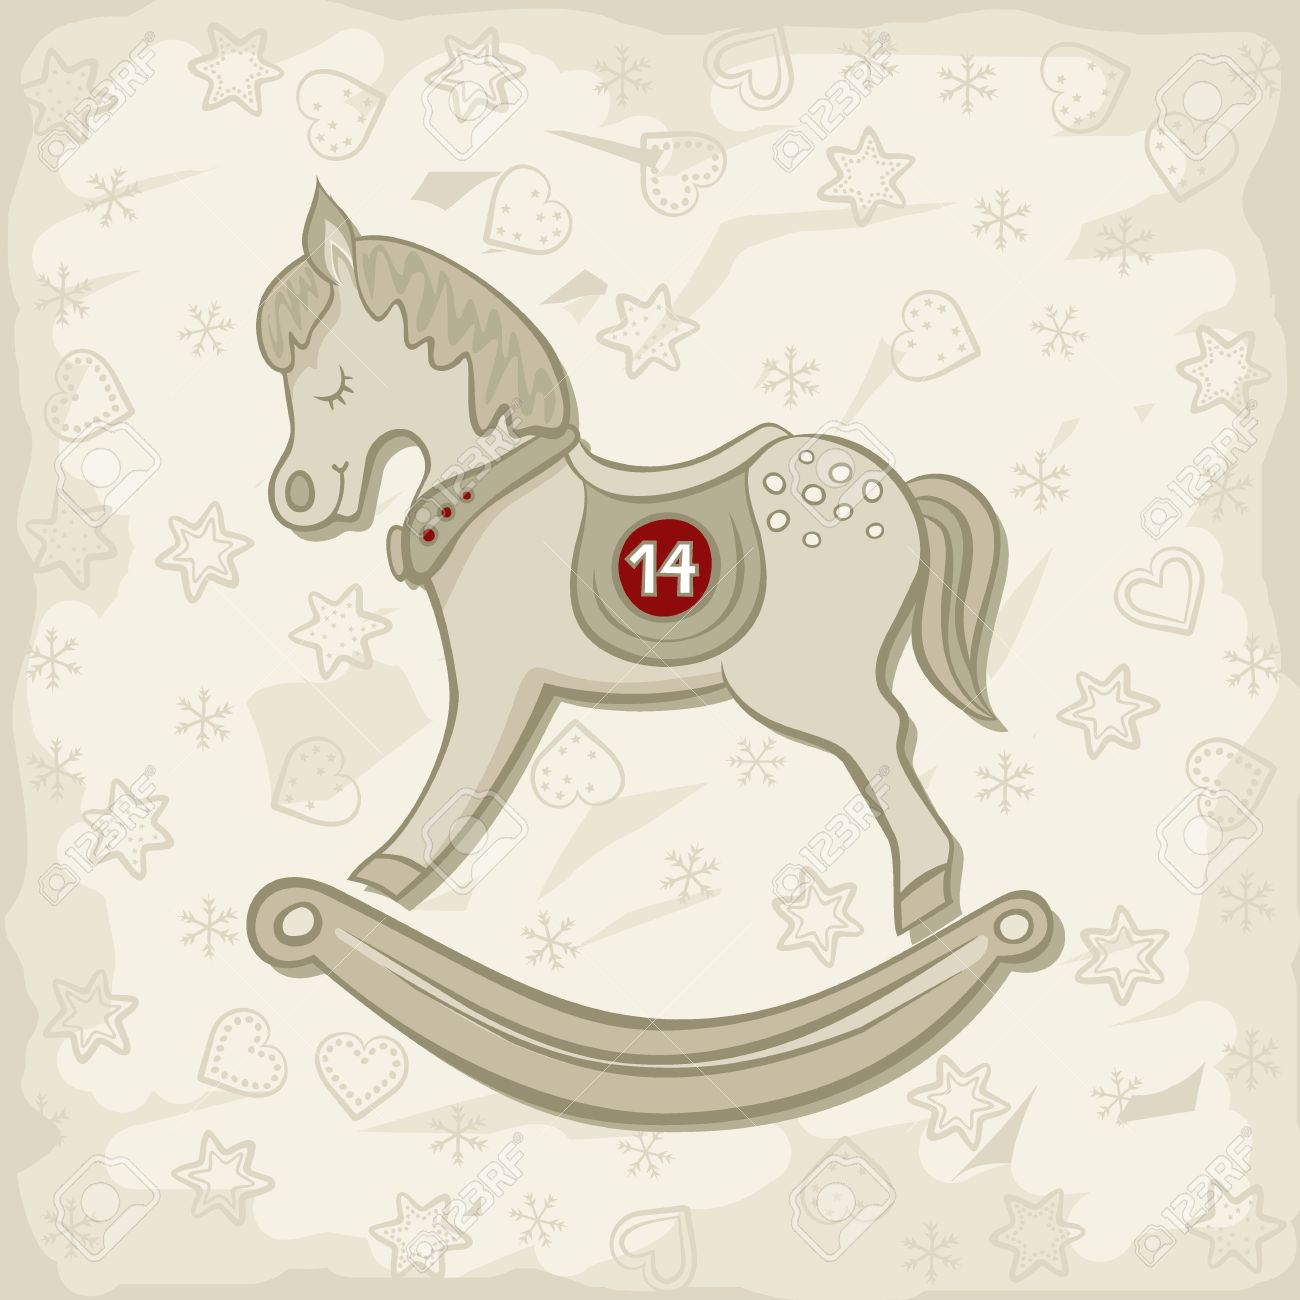 Little Beautiful Rocking Horse Vintage Toy Chinese Zodiac Sign Royalty Free Cliparts Vectors And Stock Illustration Image 24193897